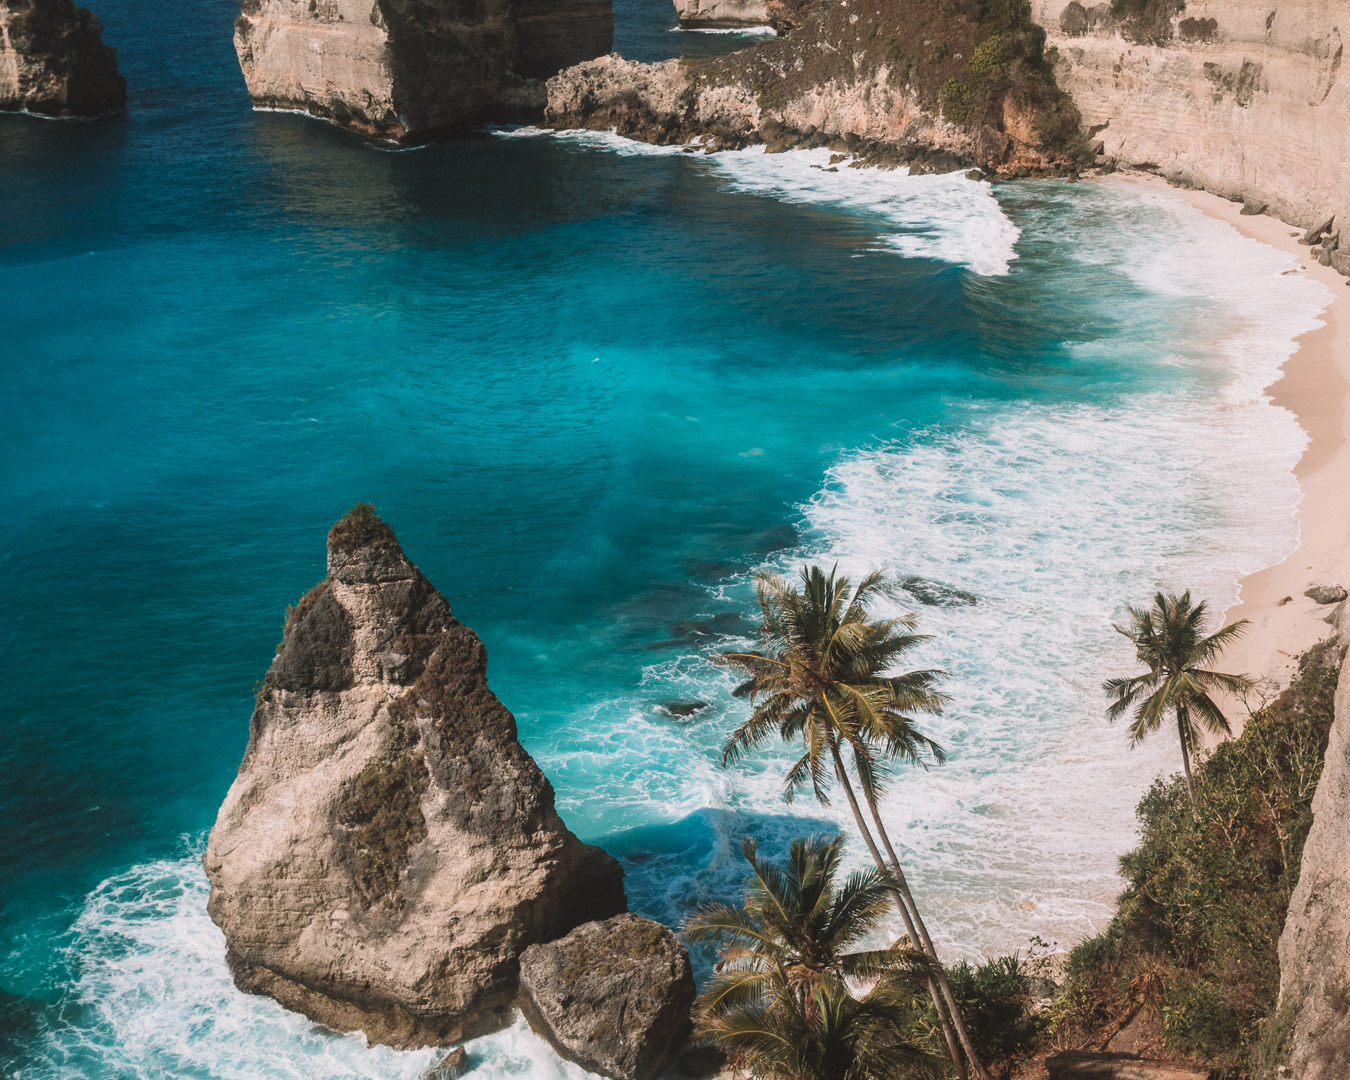 travel guide to Nusa Penida island Bali indonesia freeoversea couple tropical destination dream beach most beautiful beach palm tree and rock formation